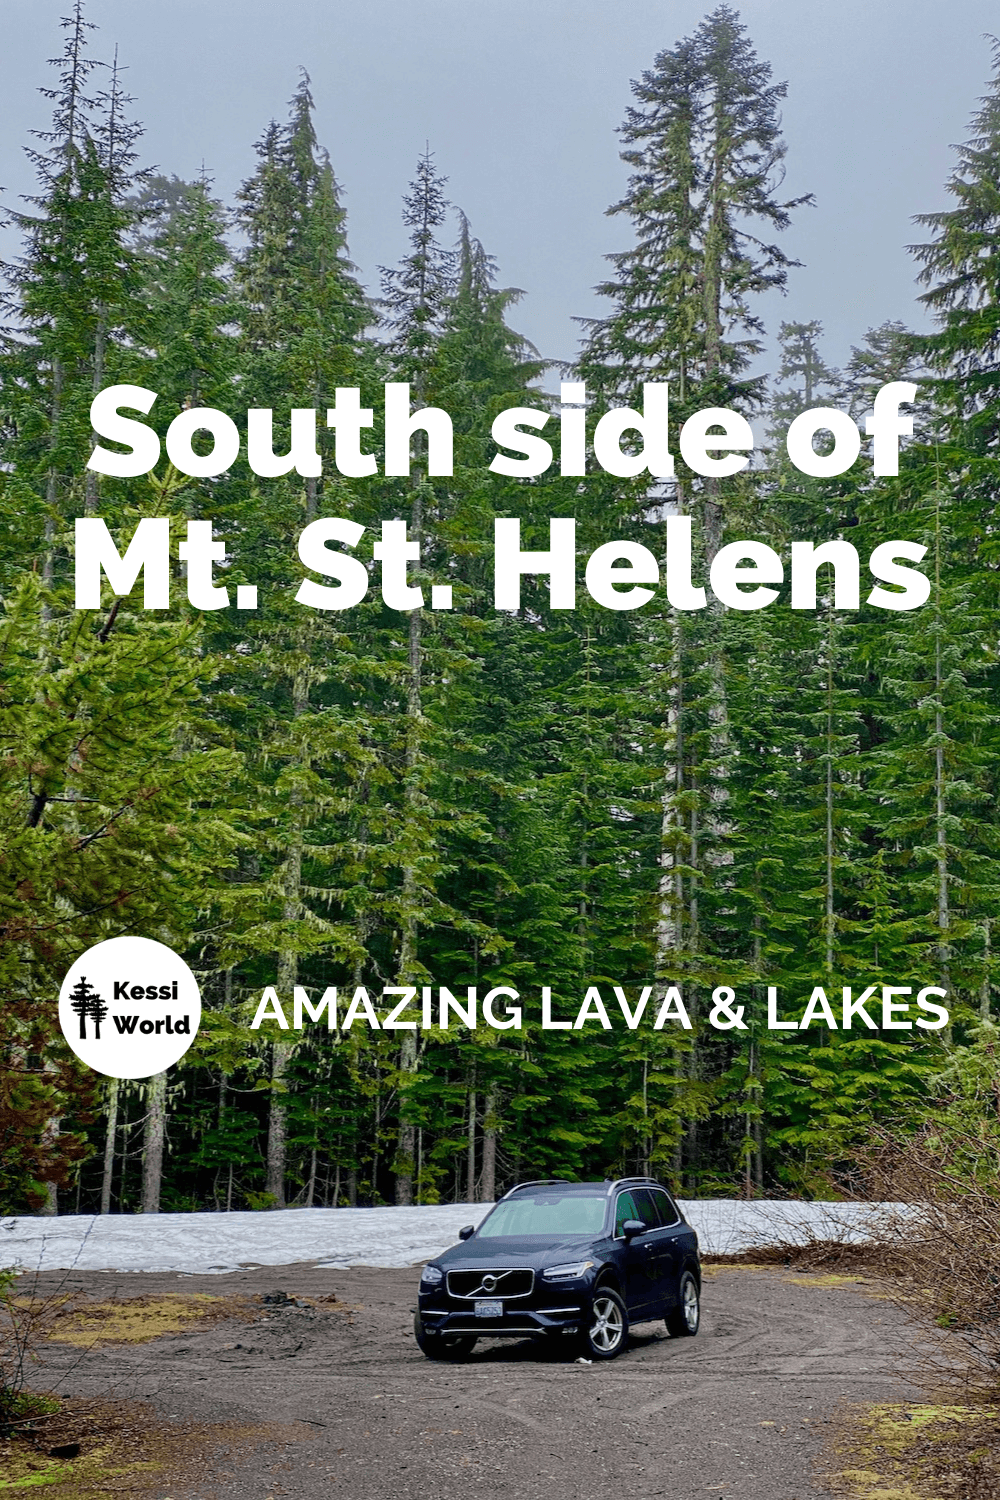 This Pinterest tile shows a A blue Volvo SUV is parked in front of a forest of tall evergreen trees with snow around the base. The sky is blue and the vehicle is slightly turned on a gravel surface. This makes a great day trip from Portland Oregon